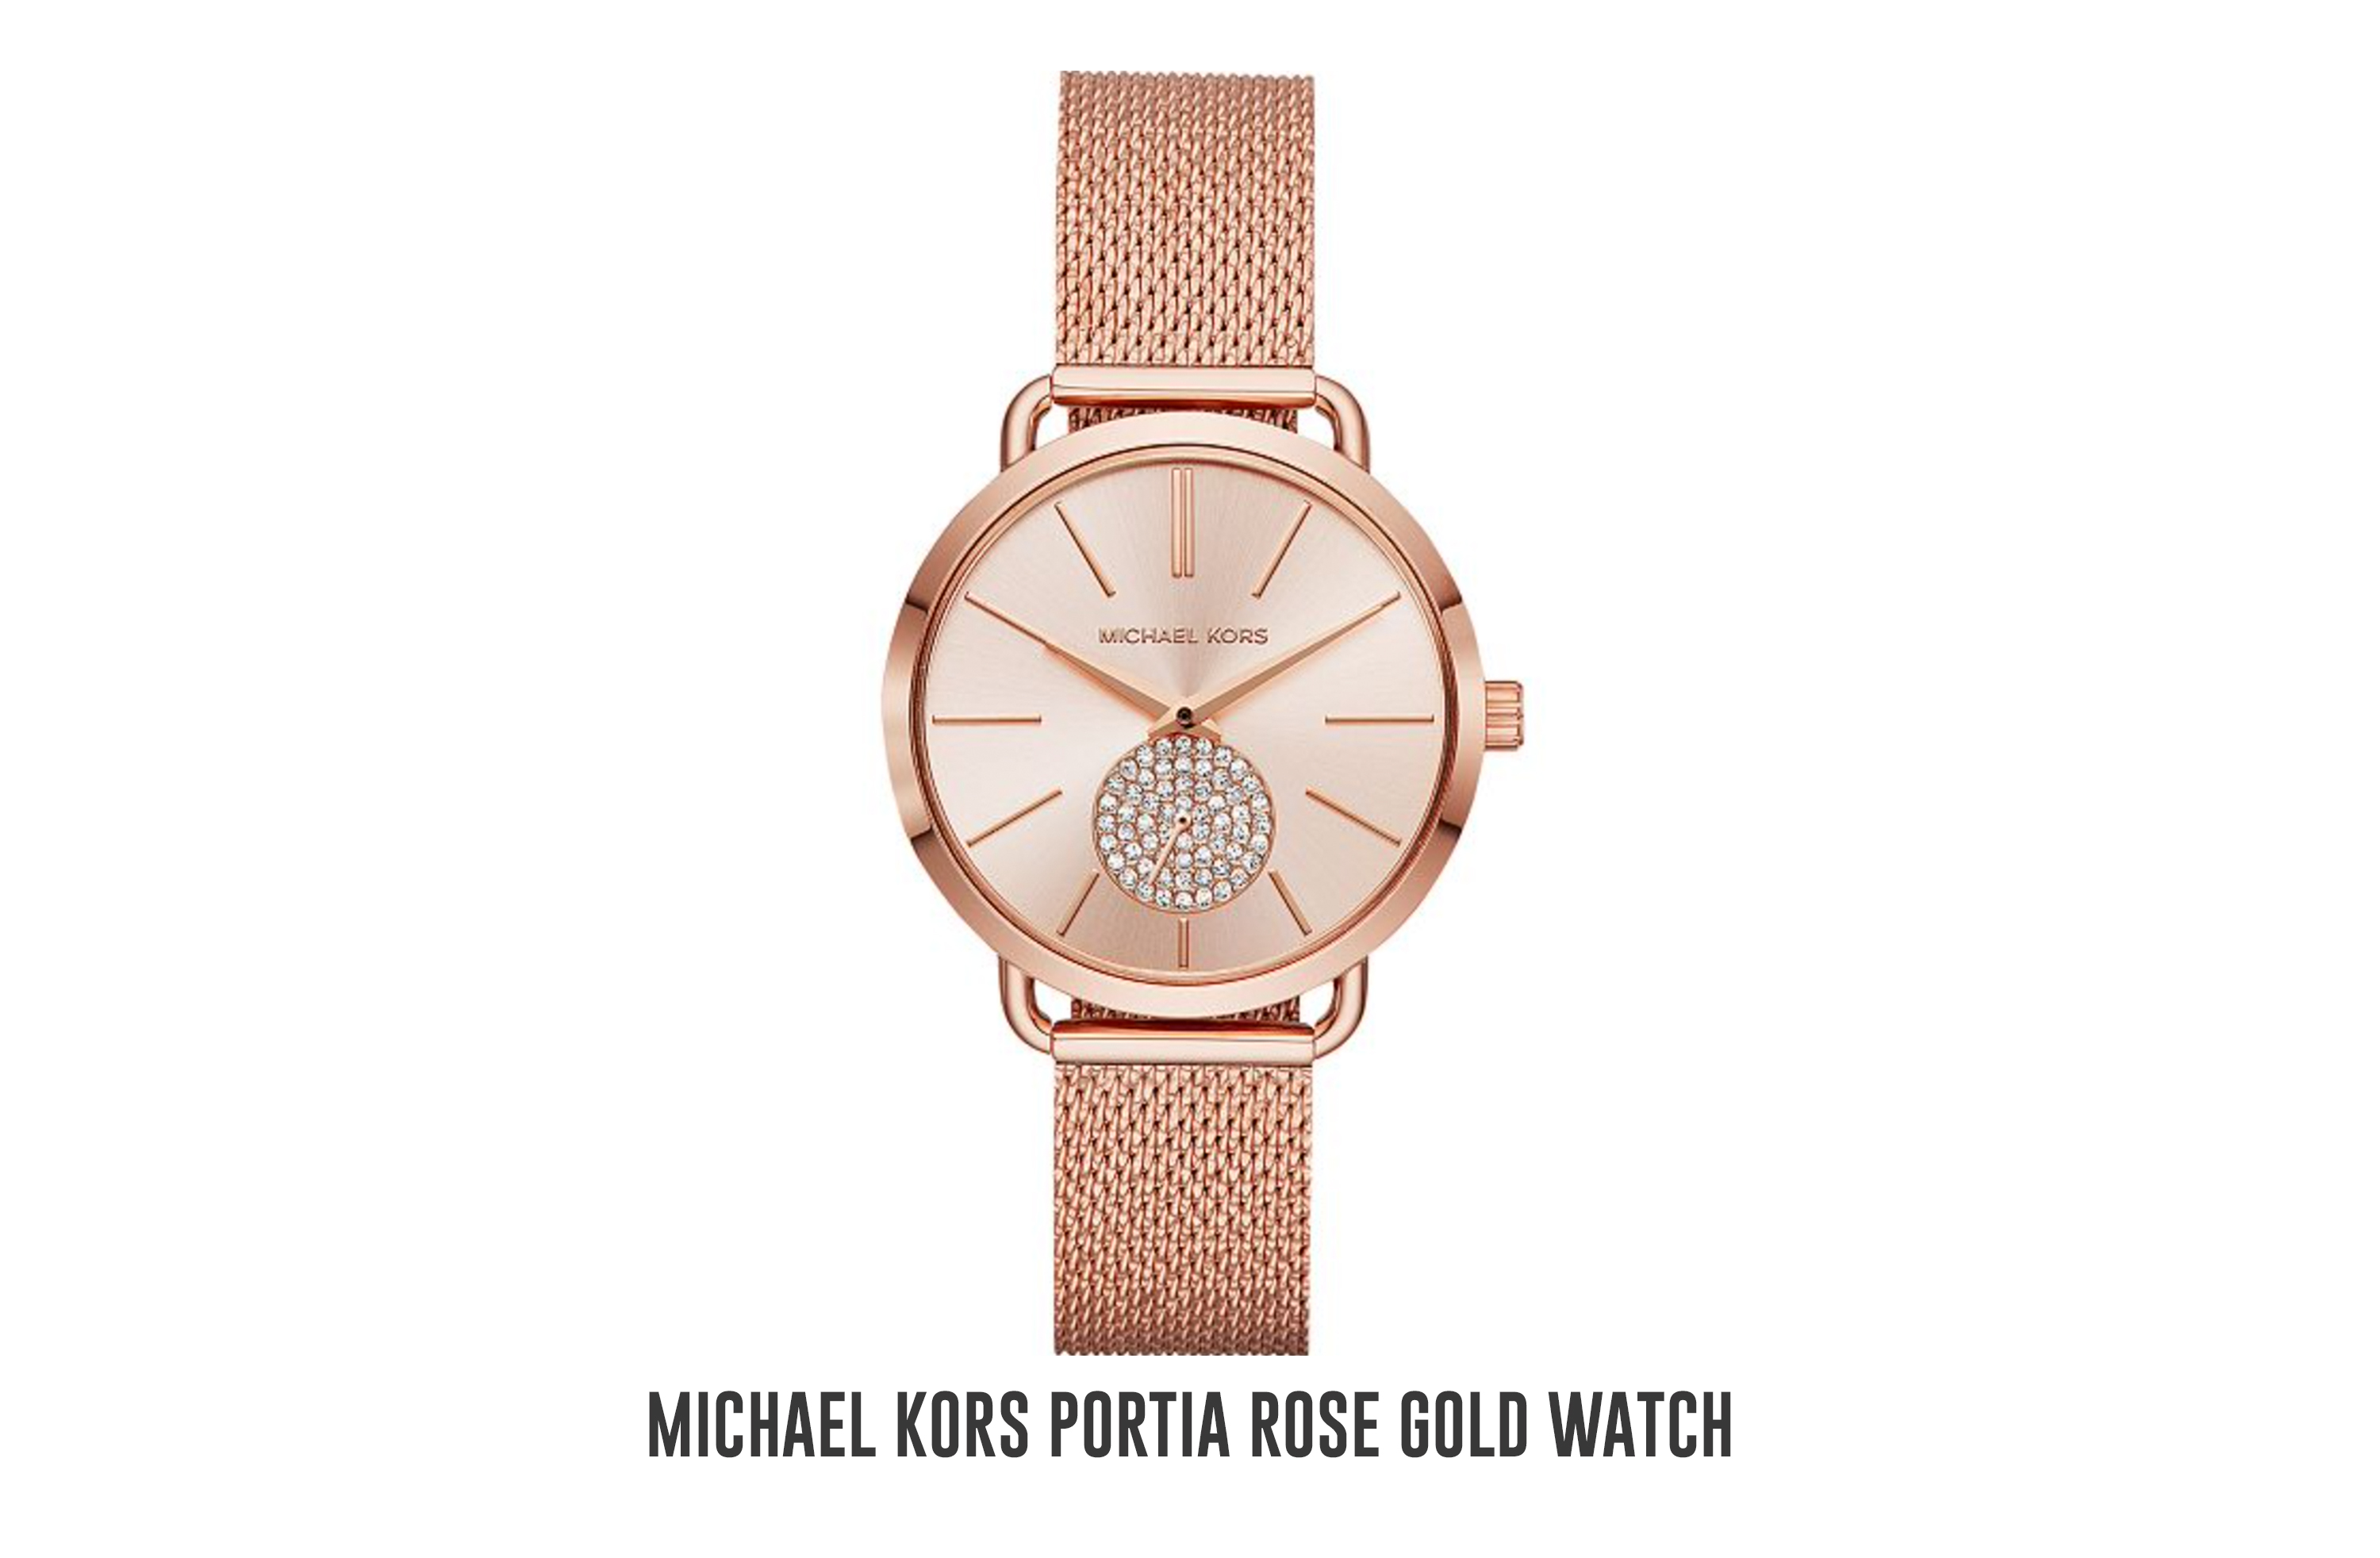 Michael Kors Portia rose gold watch